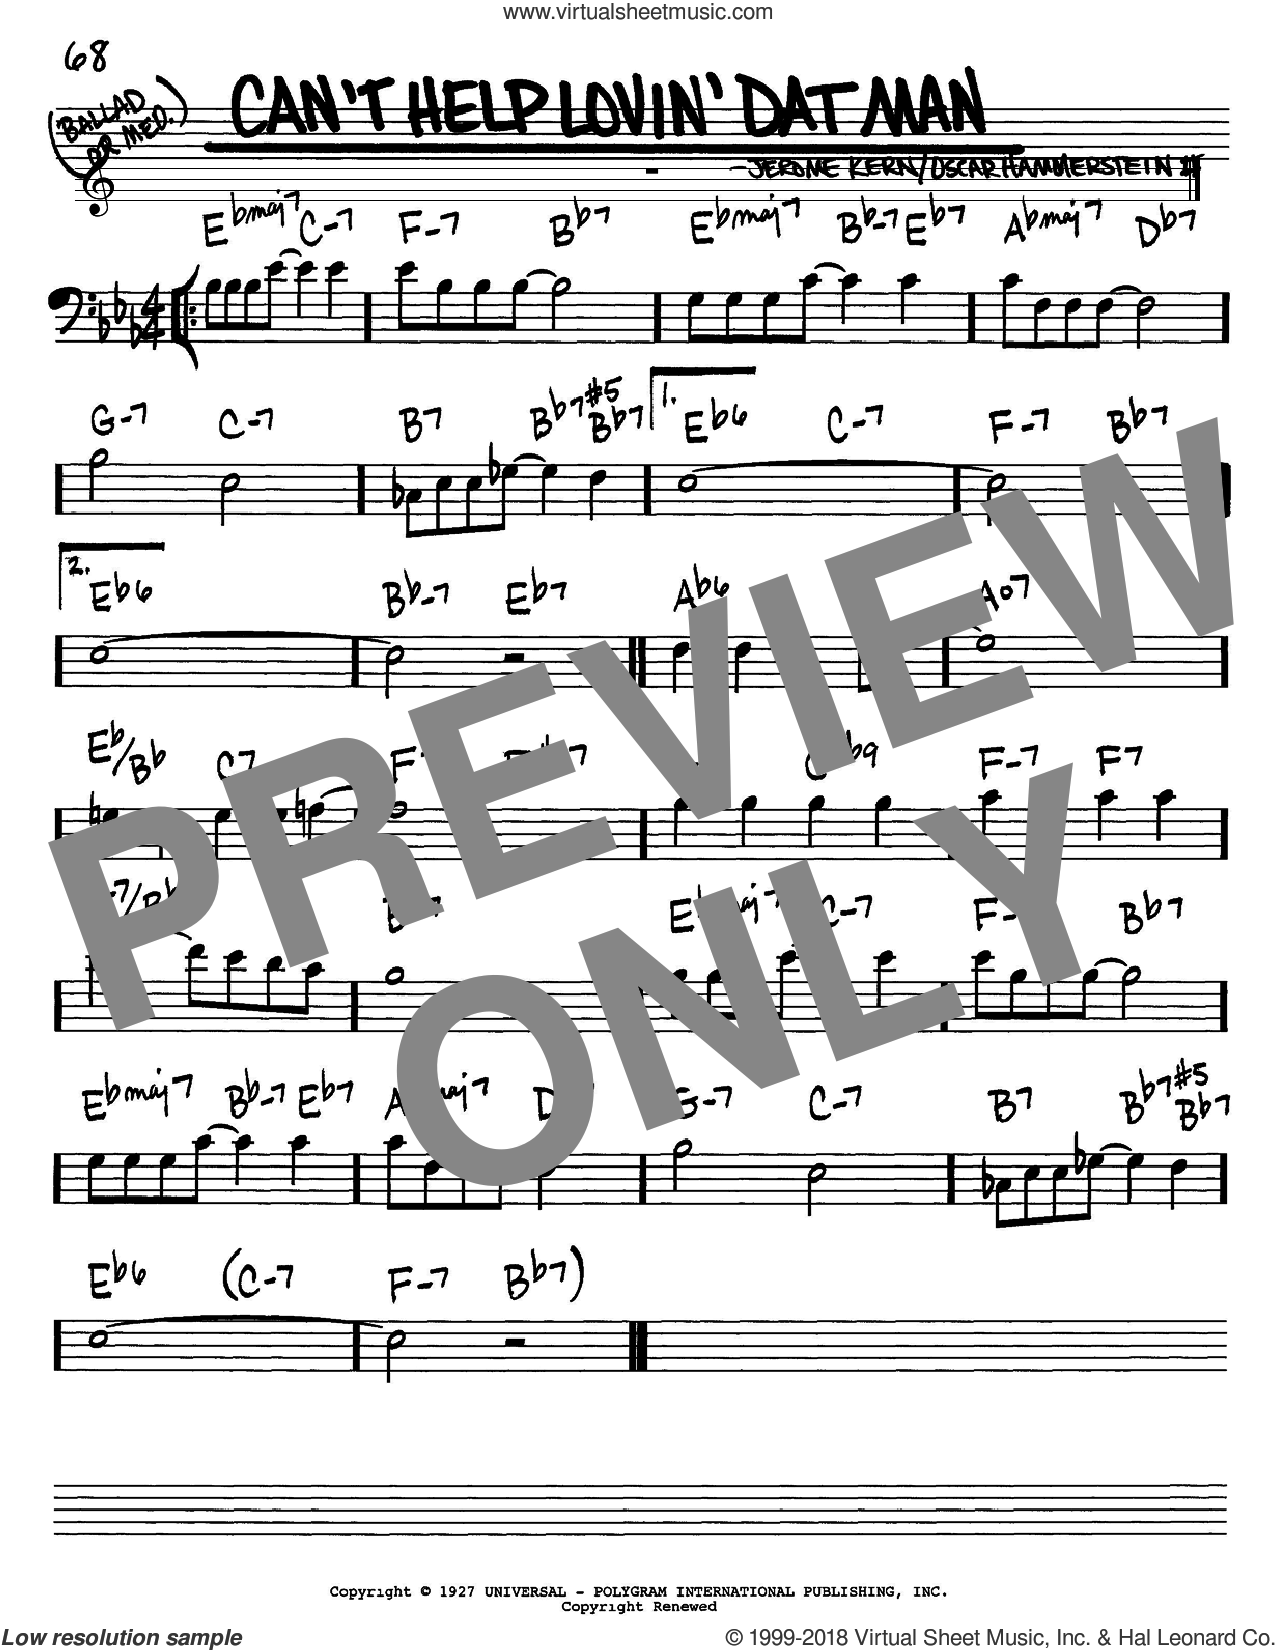 Can't Help Lovin' Dat Man sheet music for voice and other instruments (bass clef) by Jerome Kern, Show Boat (Musical) and Oscar II Hammerstein, intermediate. Score Image Preview.